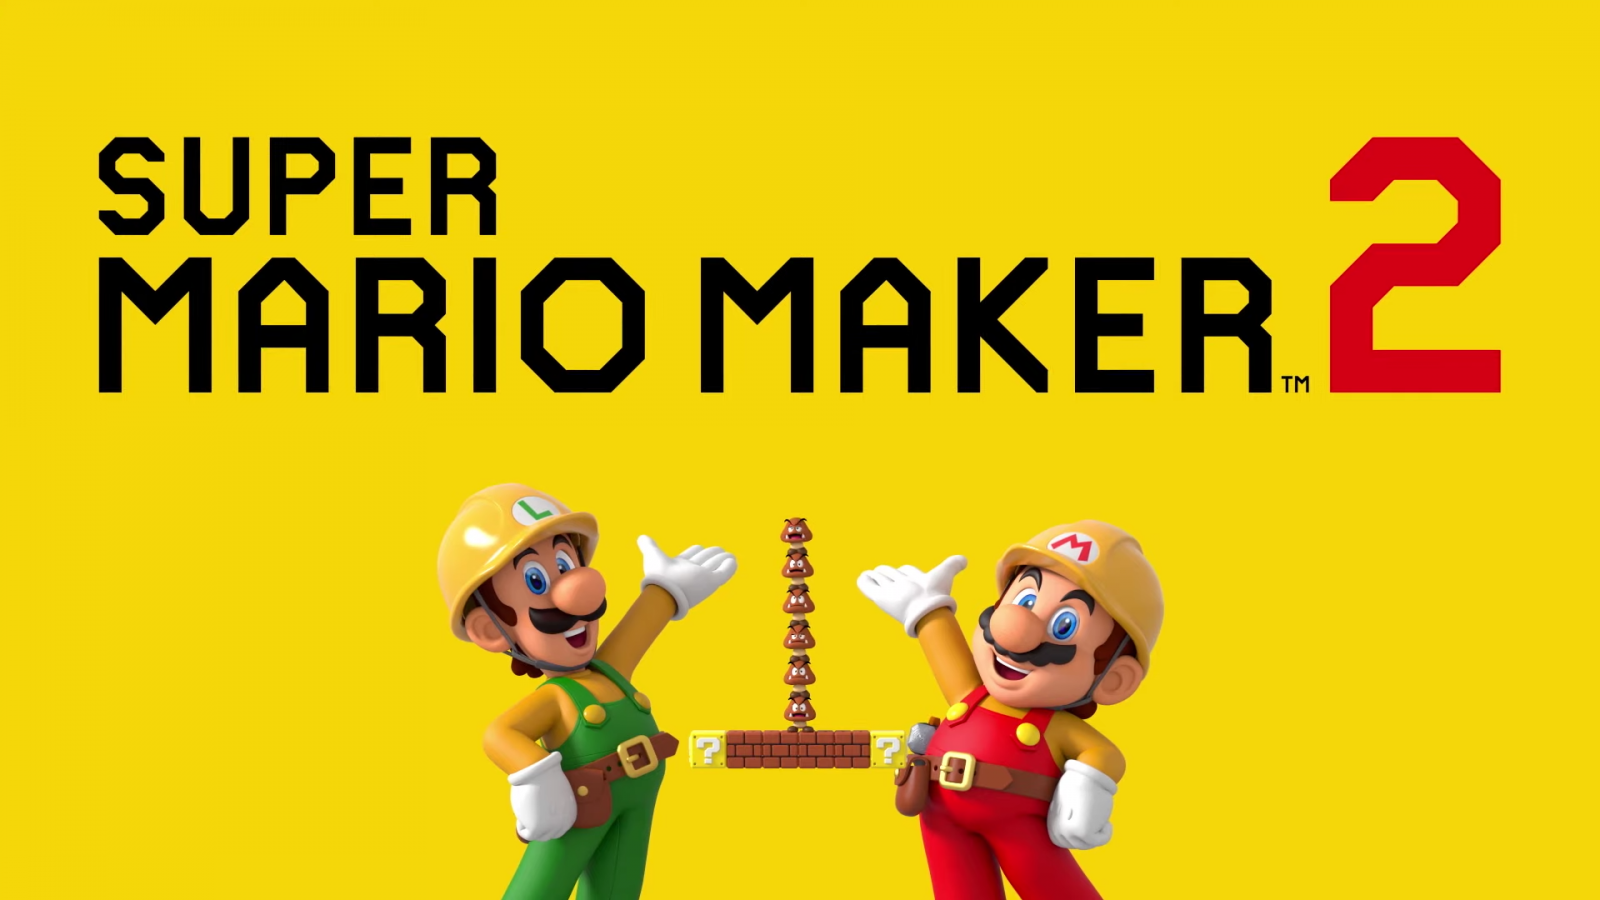 Super Mario Maker 2 Raises Course Upload Limit from 32 to 64